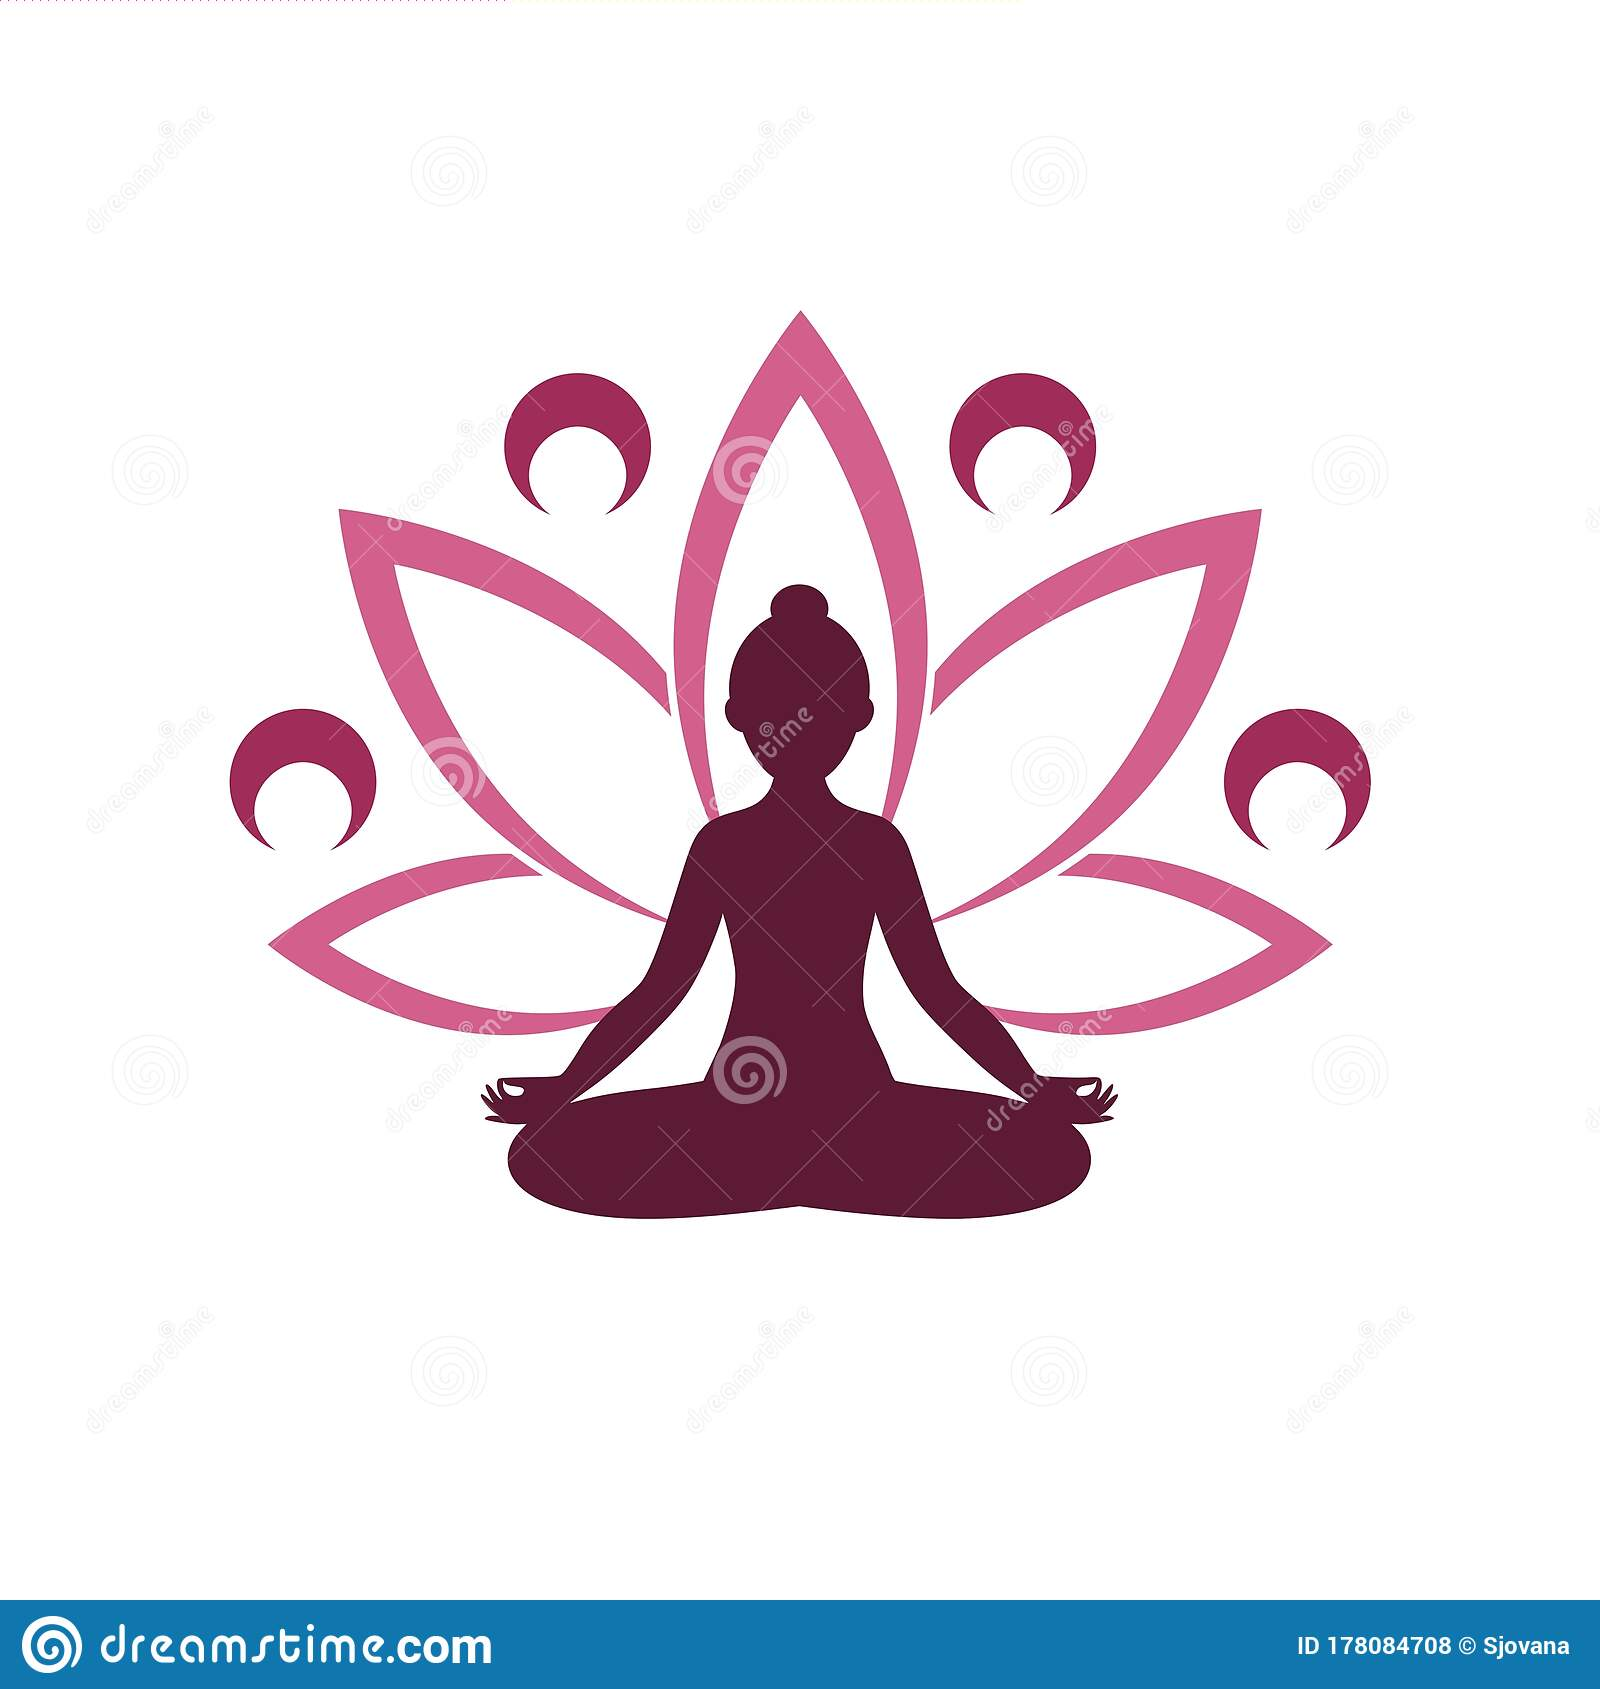 yoga logo design human meditation in lotus flower icon isolated on white background stock vector illustration of business fitness 178084708 dreamstime com